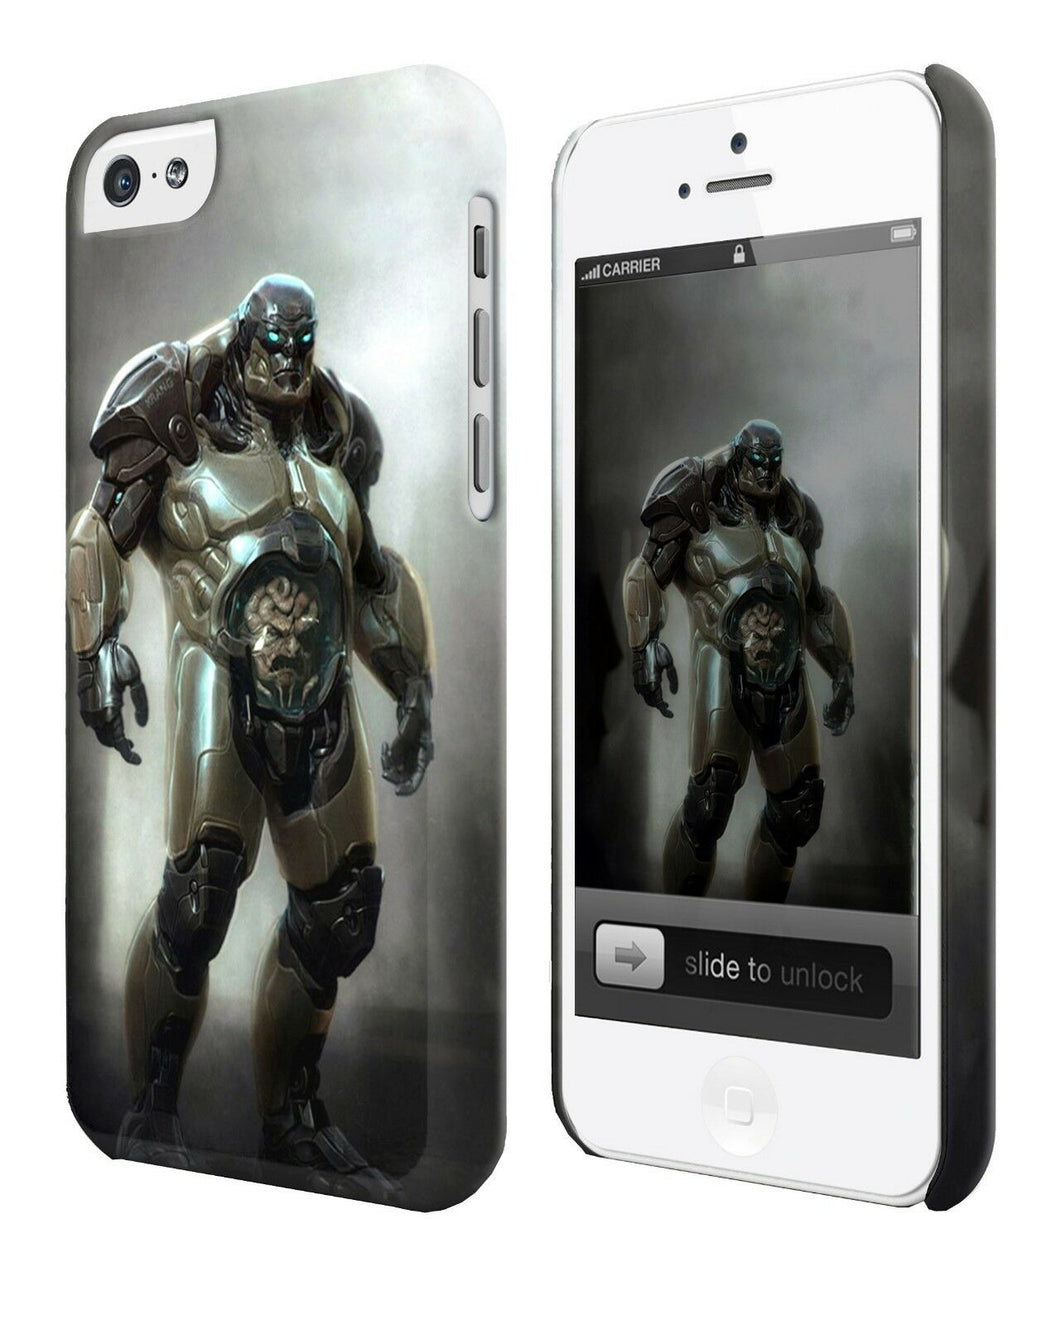 Teenage Mutant Ninja Turtles Krang iPhone 4S 5S 5c 6S + Plus SE Case Cover 1